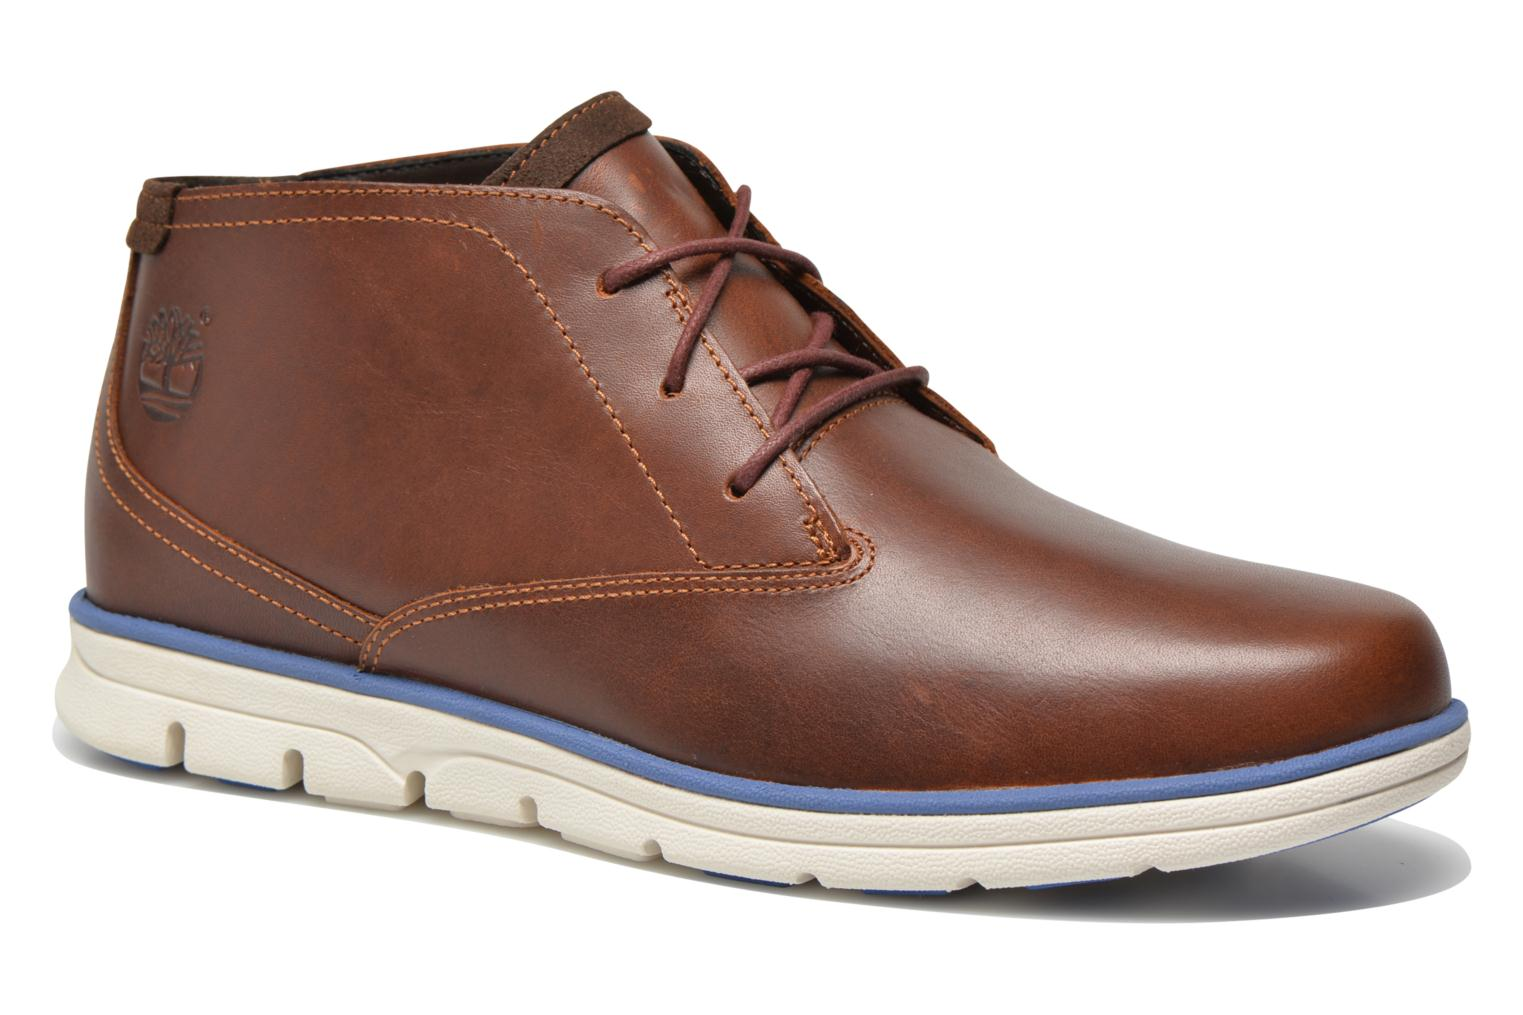 Chaussures à lacets Timberland marron Casual homme ipi1P1